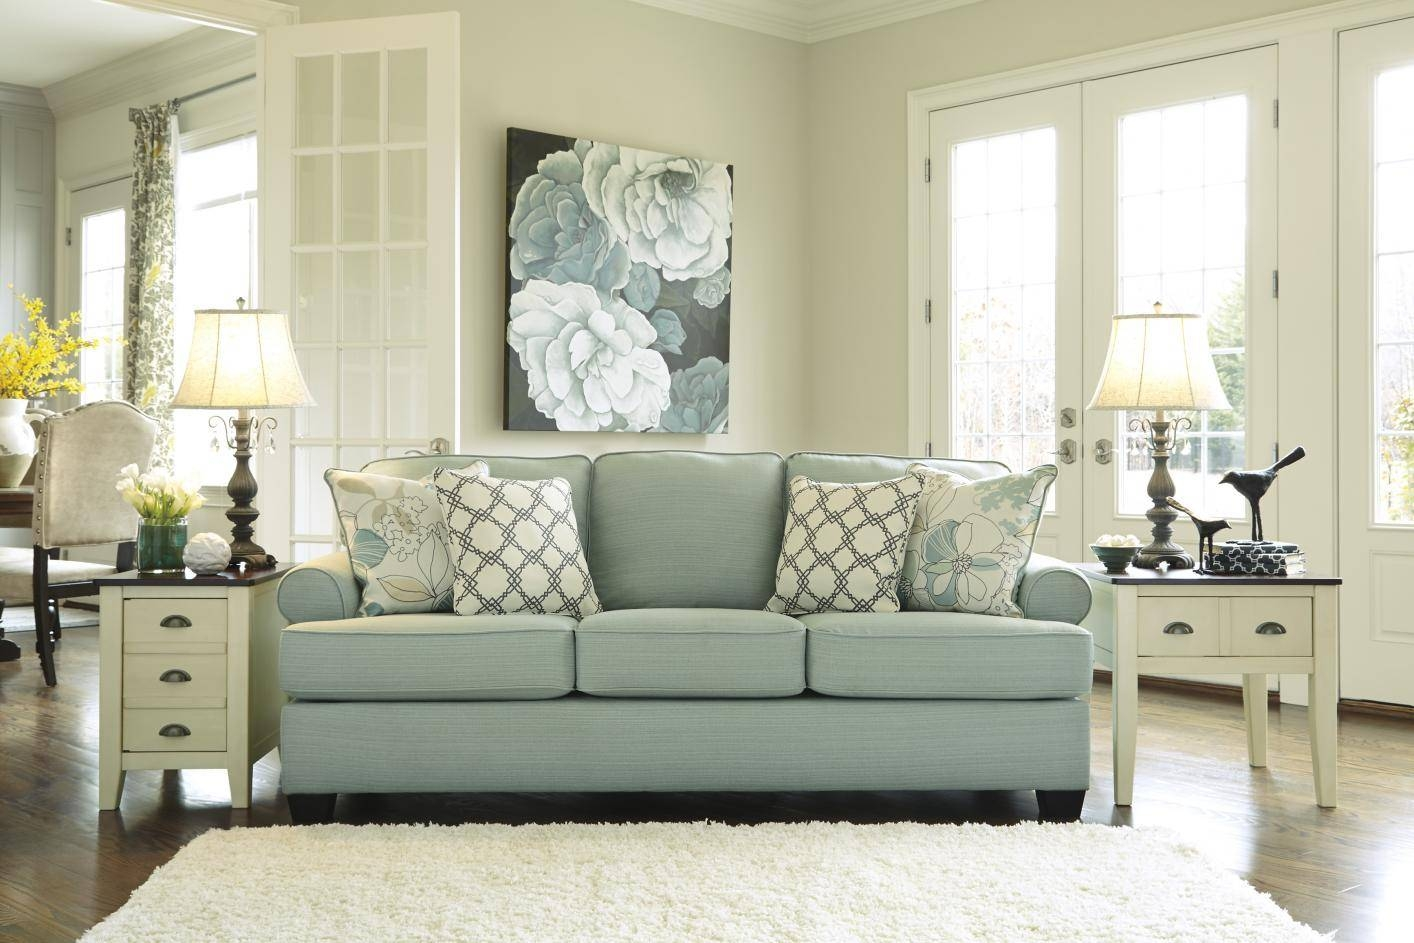 Daystar Seafoam Green Fabric Sofa - Steal-A-Sofa Furniture Outlet with Seafoam Green Couches (Image 5 of 15)